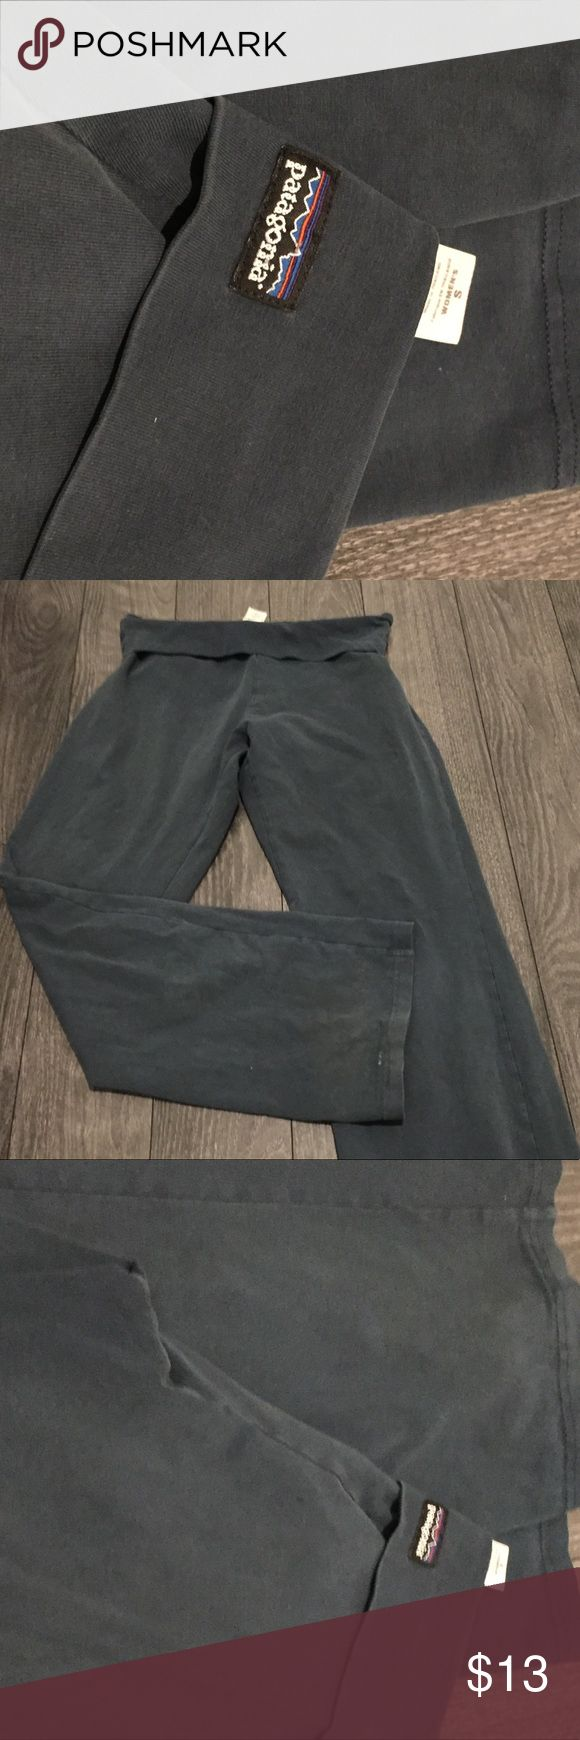 PATAGONIA LEGGINGS Gently used  Grayish blue color  I#001E Patagonia Pants Leggings